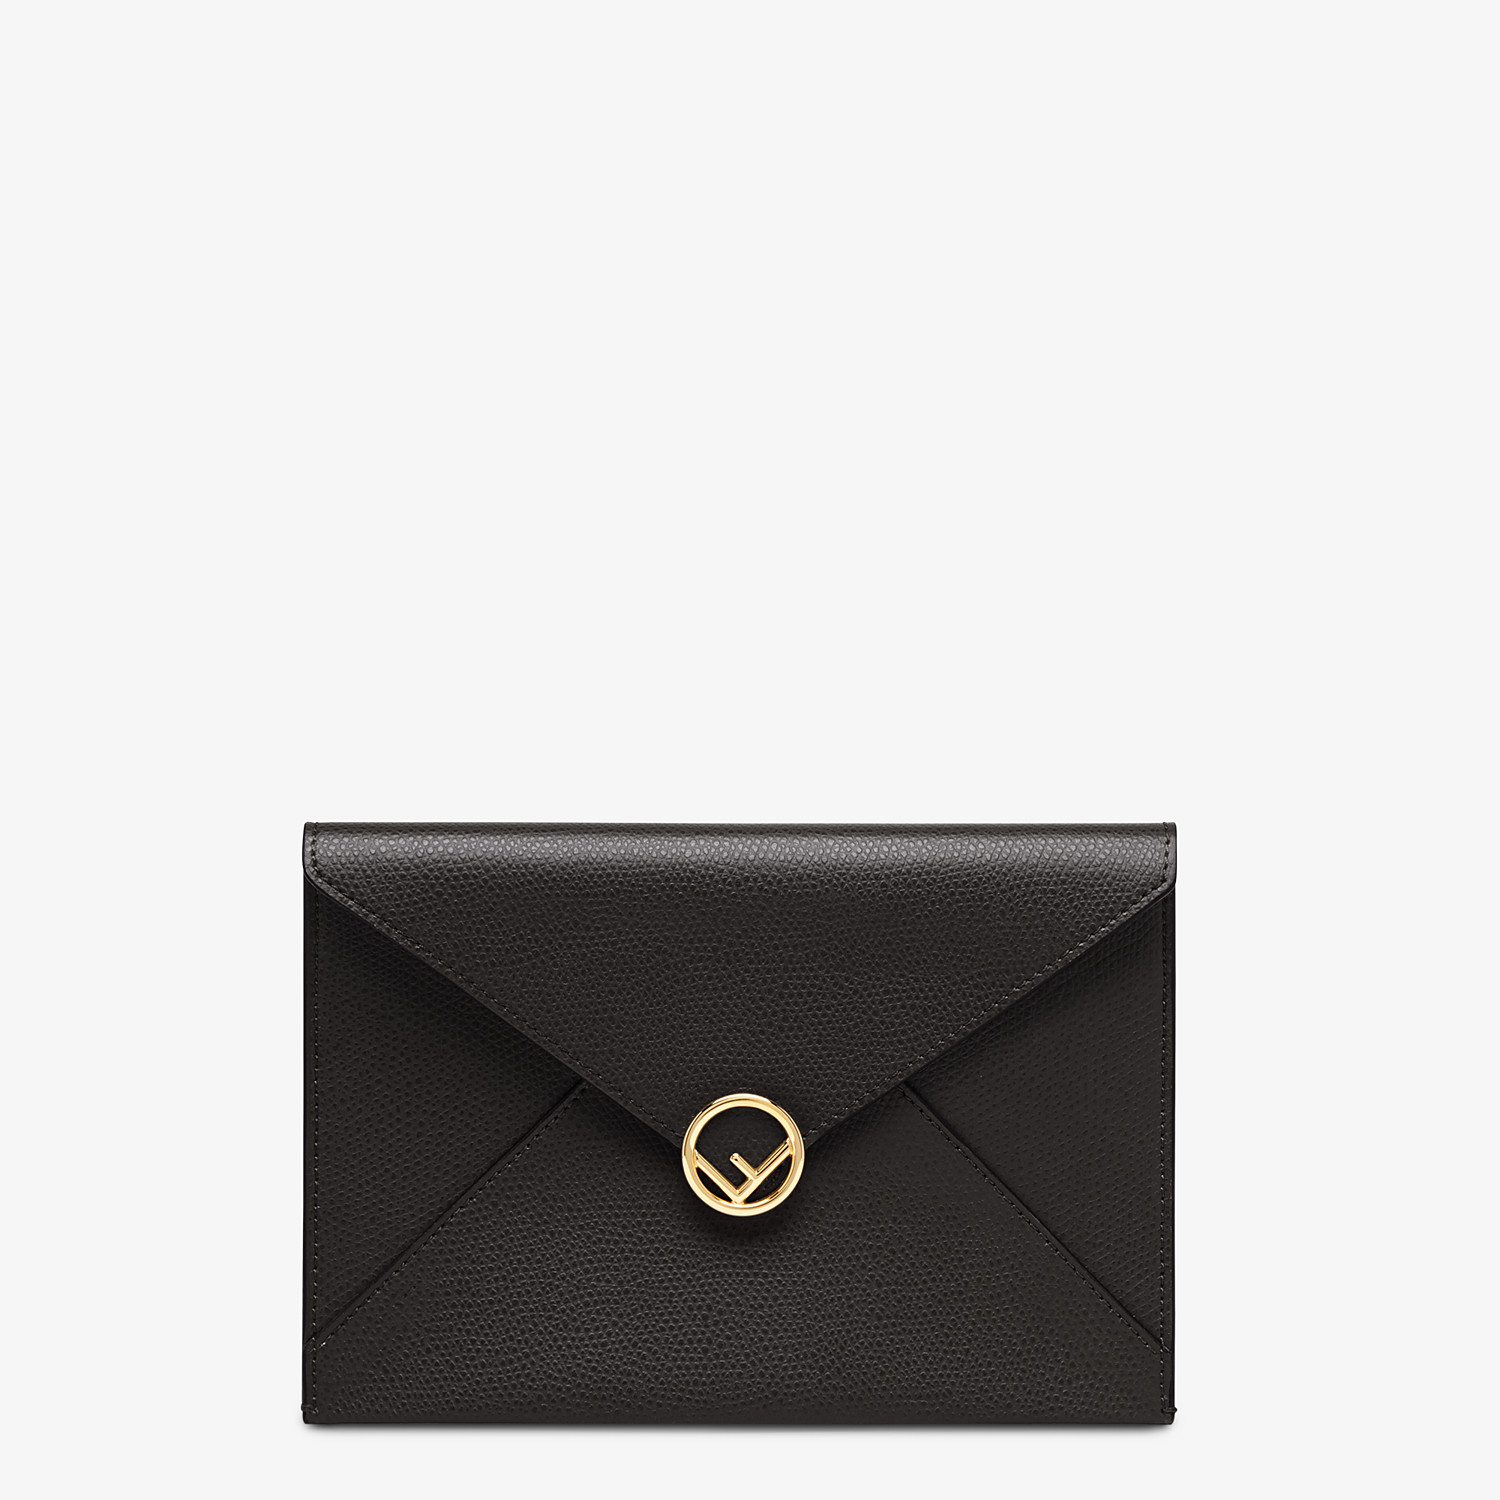 FENDI MEDIUM FLAT POUCH - Black leather pouch - view 1 detail